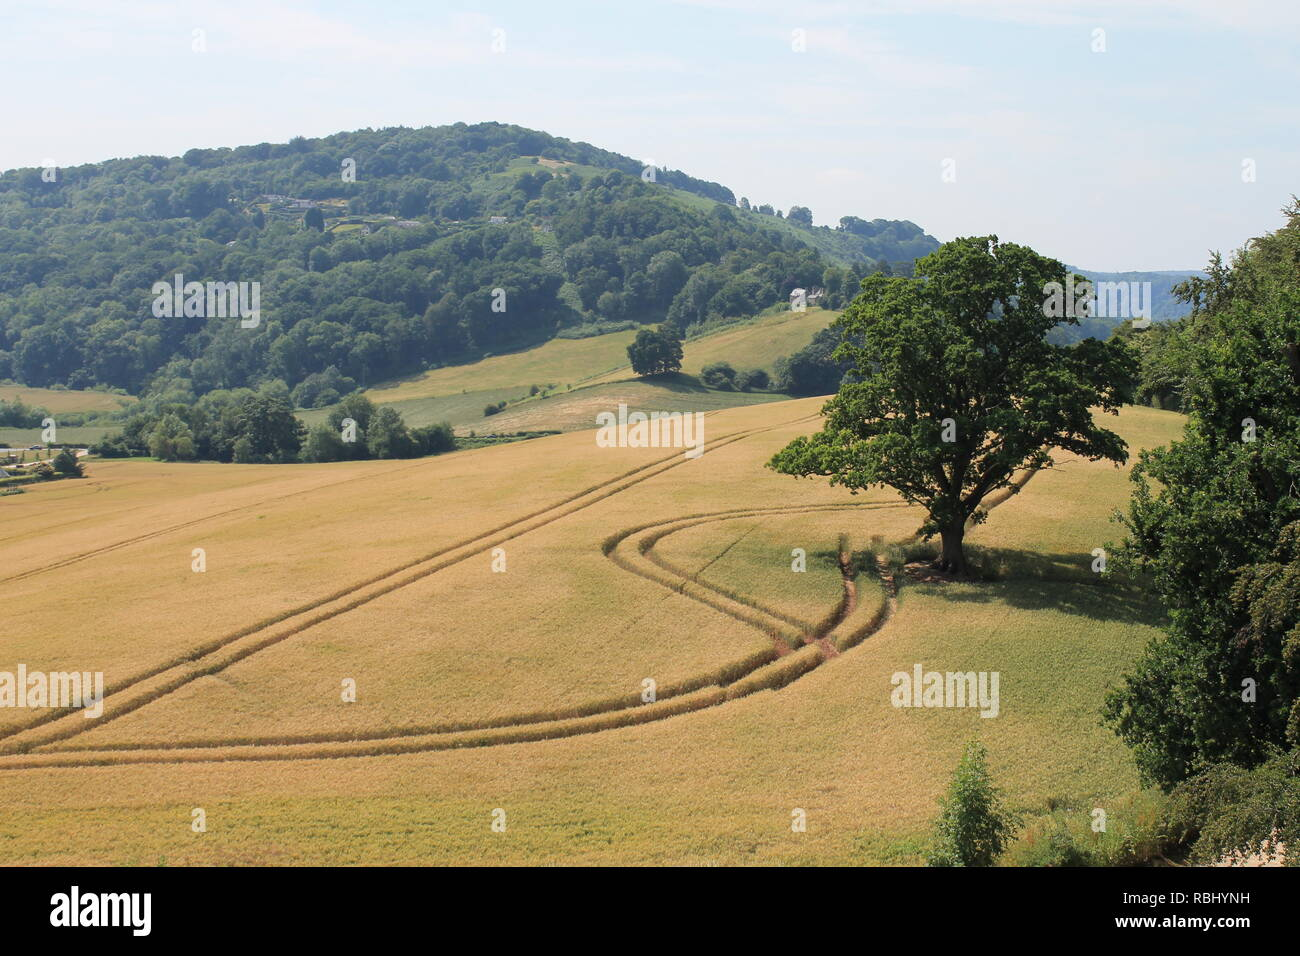 Coppet Hill from Goodrich Castle, Goodrich, Wye Valley, Herefordshire, England, UK - Stock Image